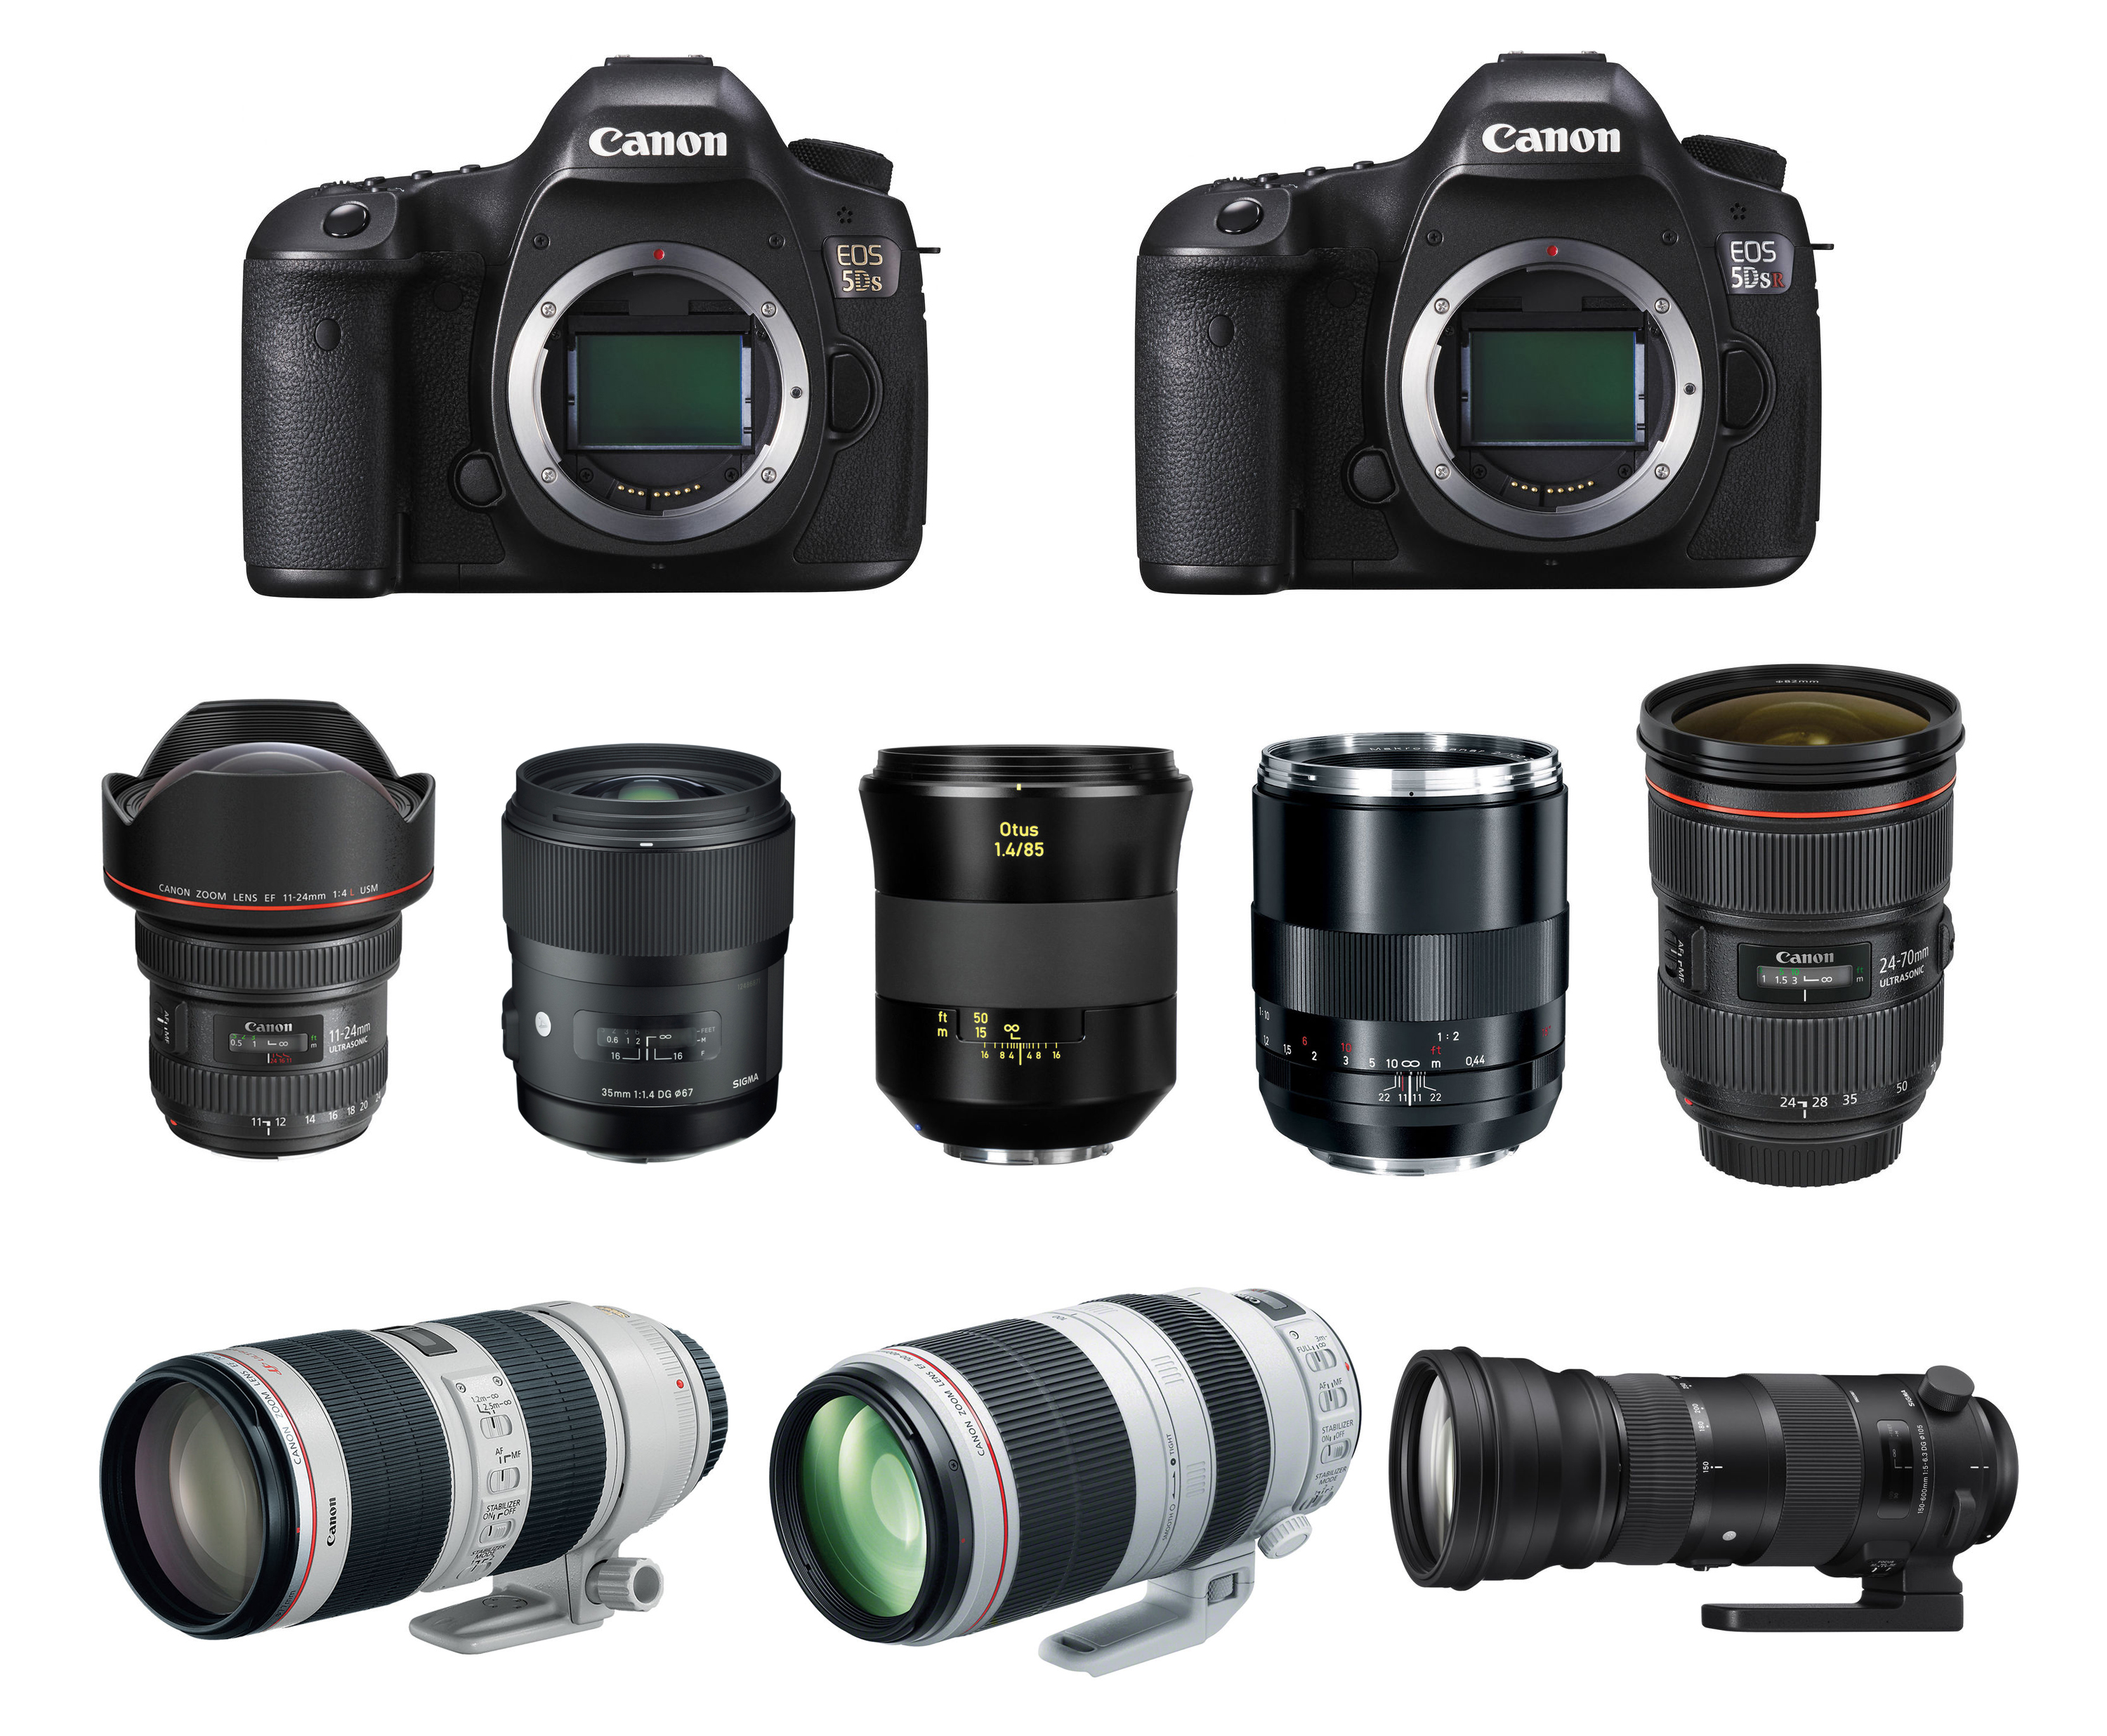 Camera Canon Usa Dslr Cameras recommended lenses for canon eos 5ds r according to best 5ds